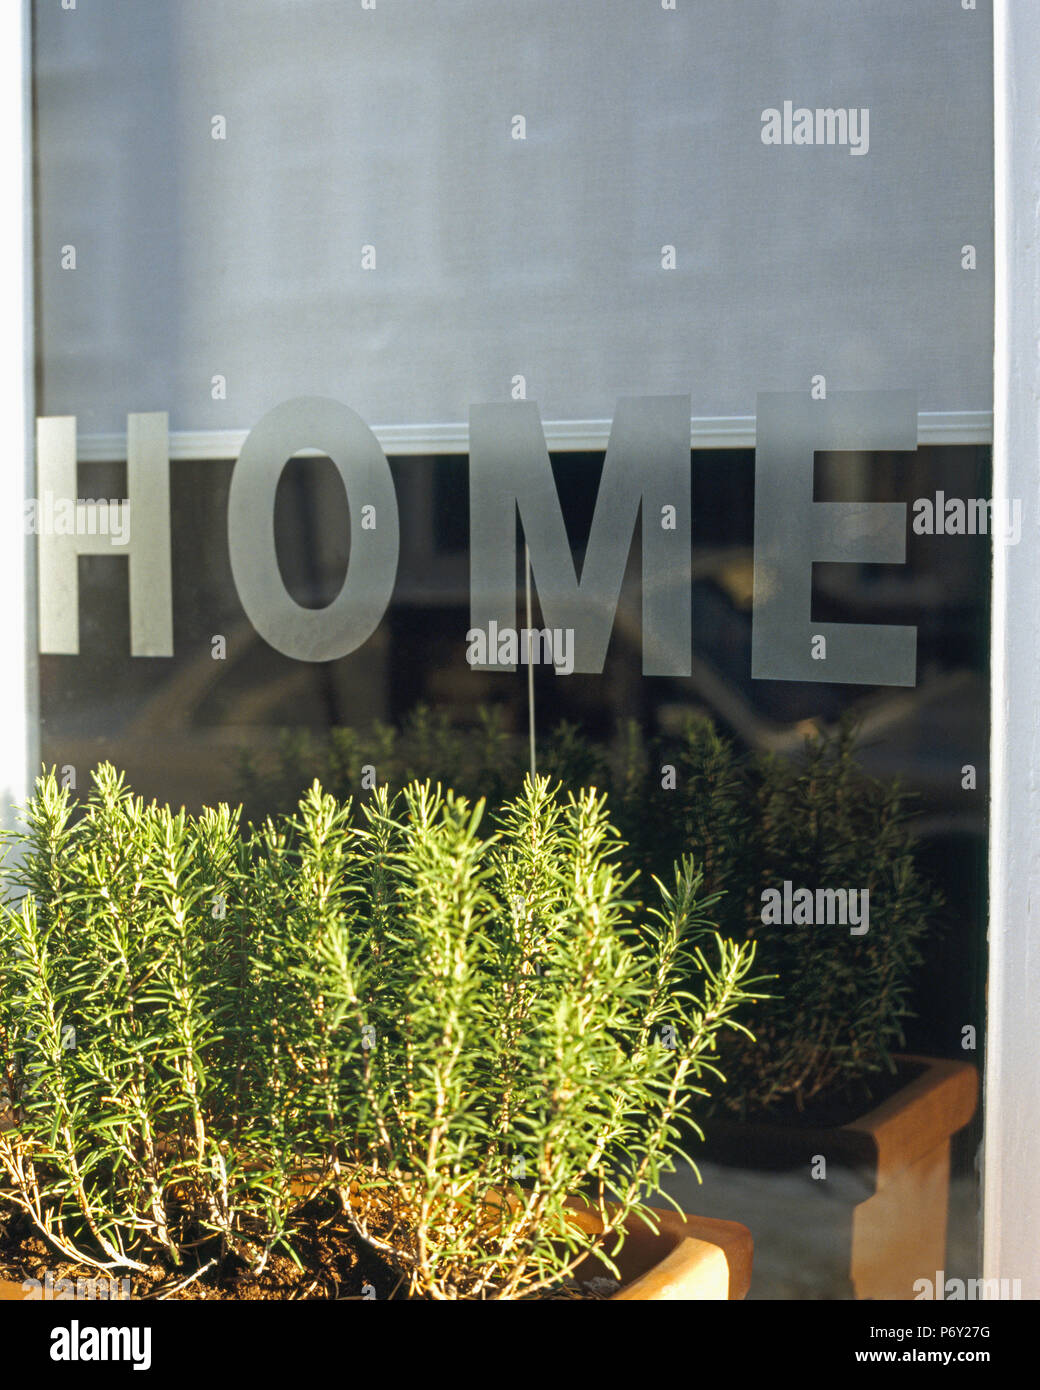 "Close-up of rosemary in window box in front of window with engraved Home"" motif Stock Photo"